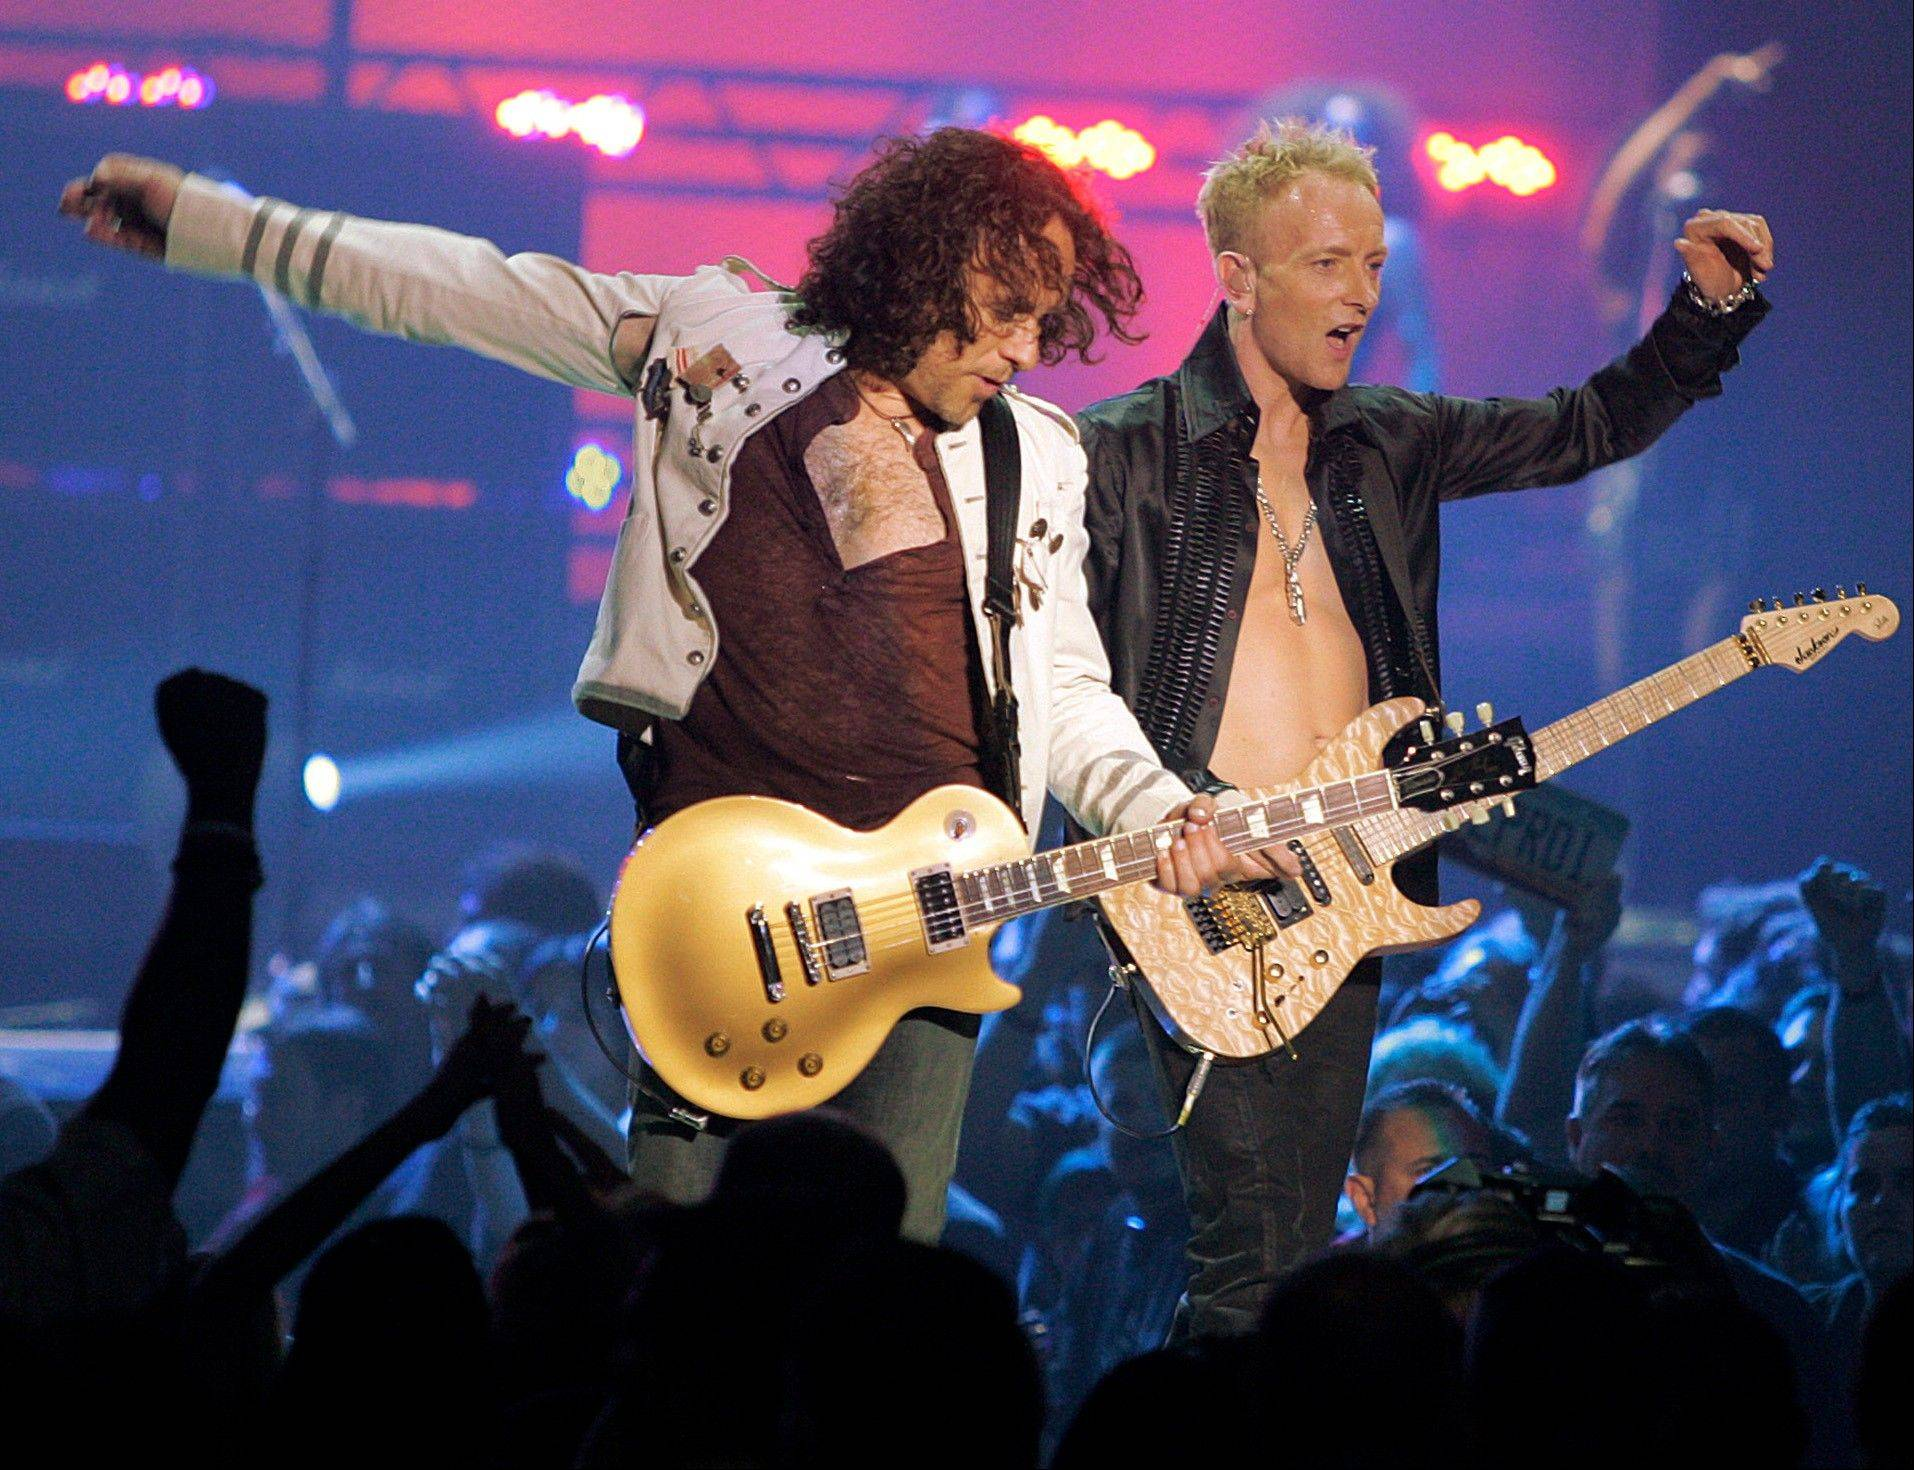 Vivian Campbell, left, of rock group Def Leppard revealed that he has Hodgkin's Lymphoma and has been in chemotherapy for two months, with four months to go.